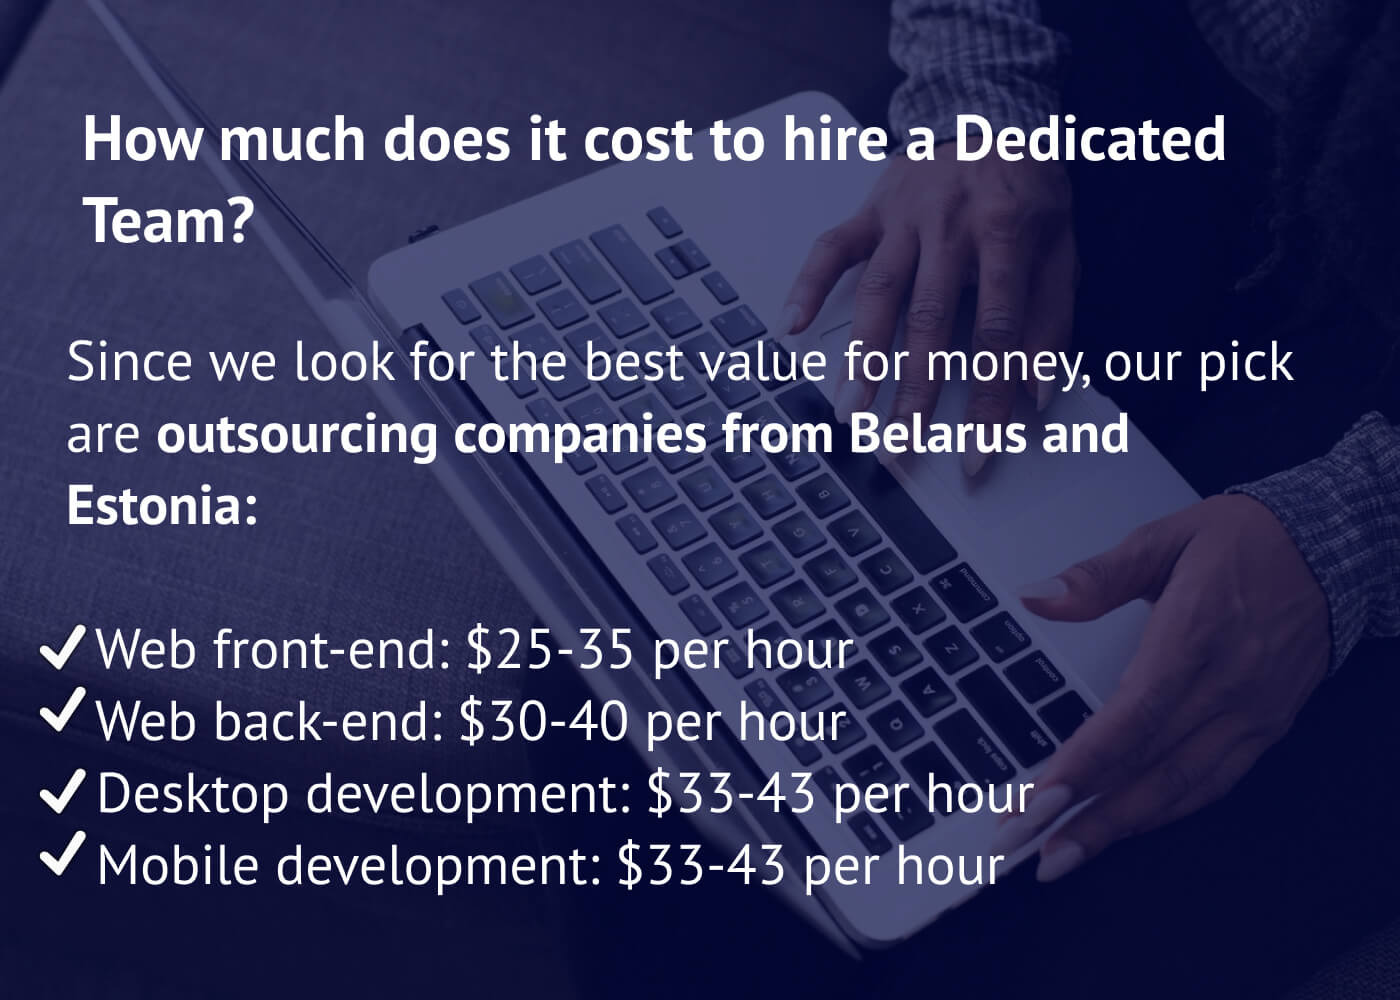 How much does it cost to hire a dedicated team